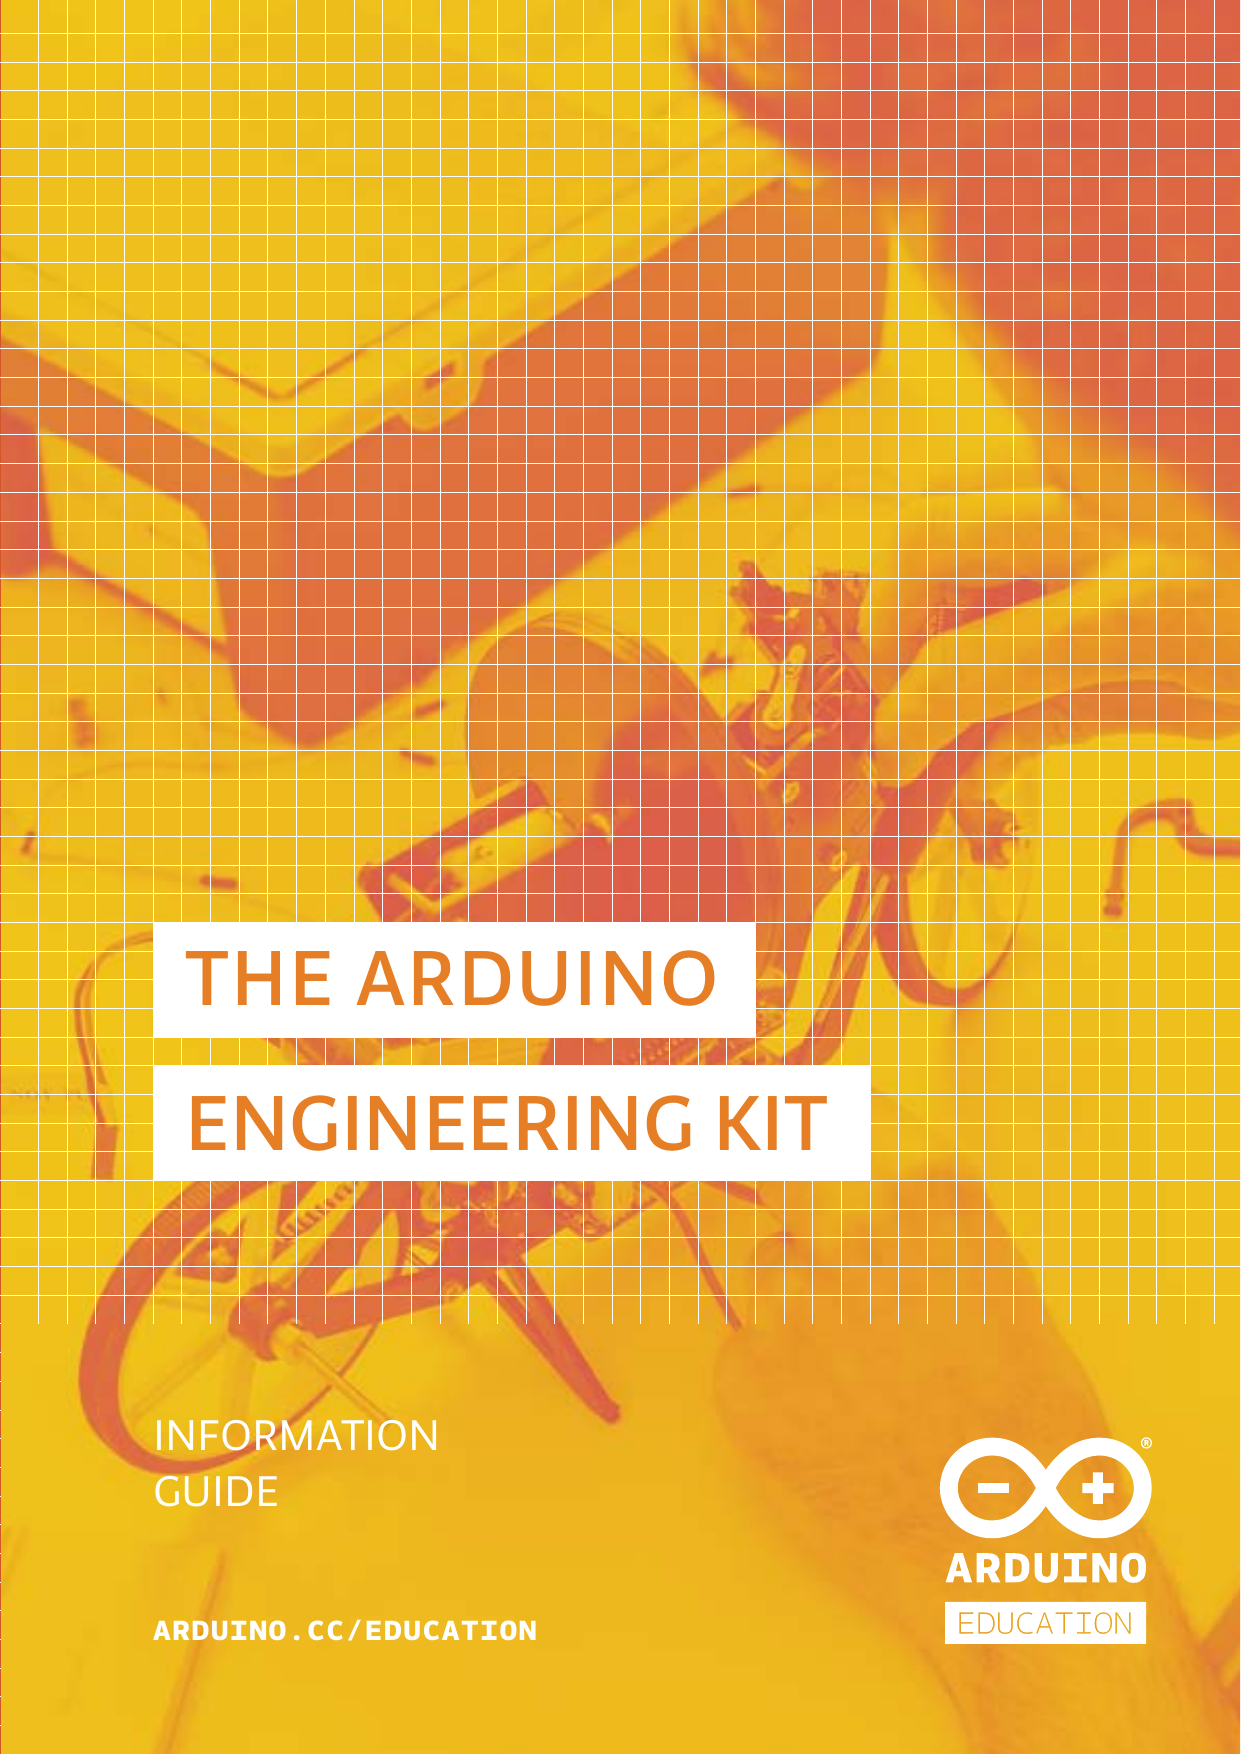 INFORMATION GUIDE FOR ARDUINO ENGINEERING KIT